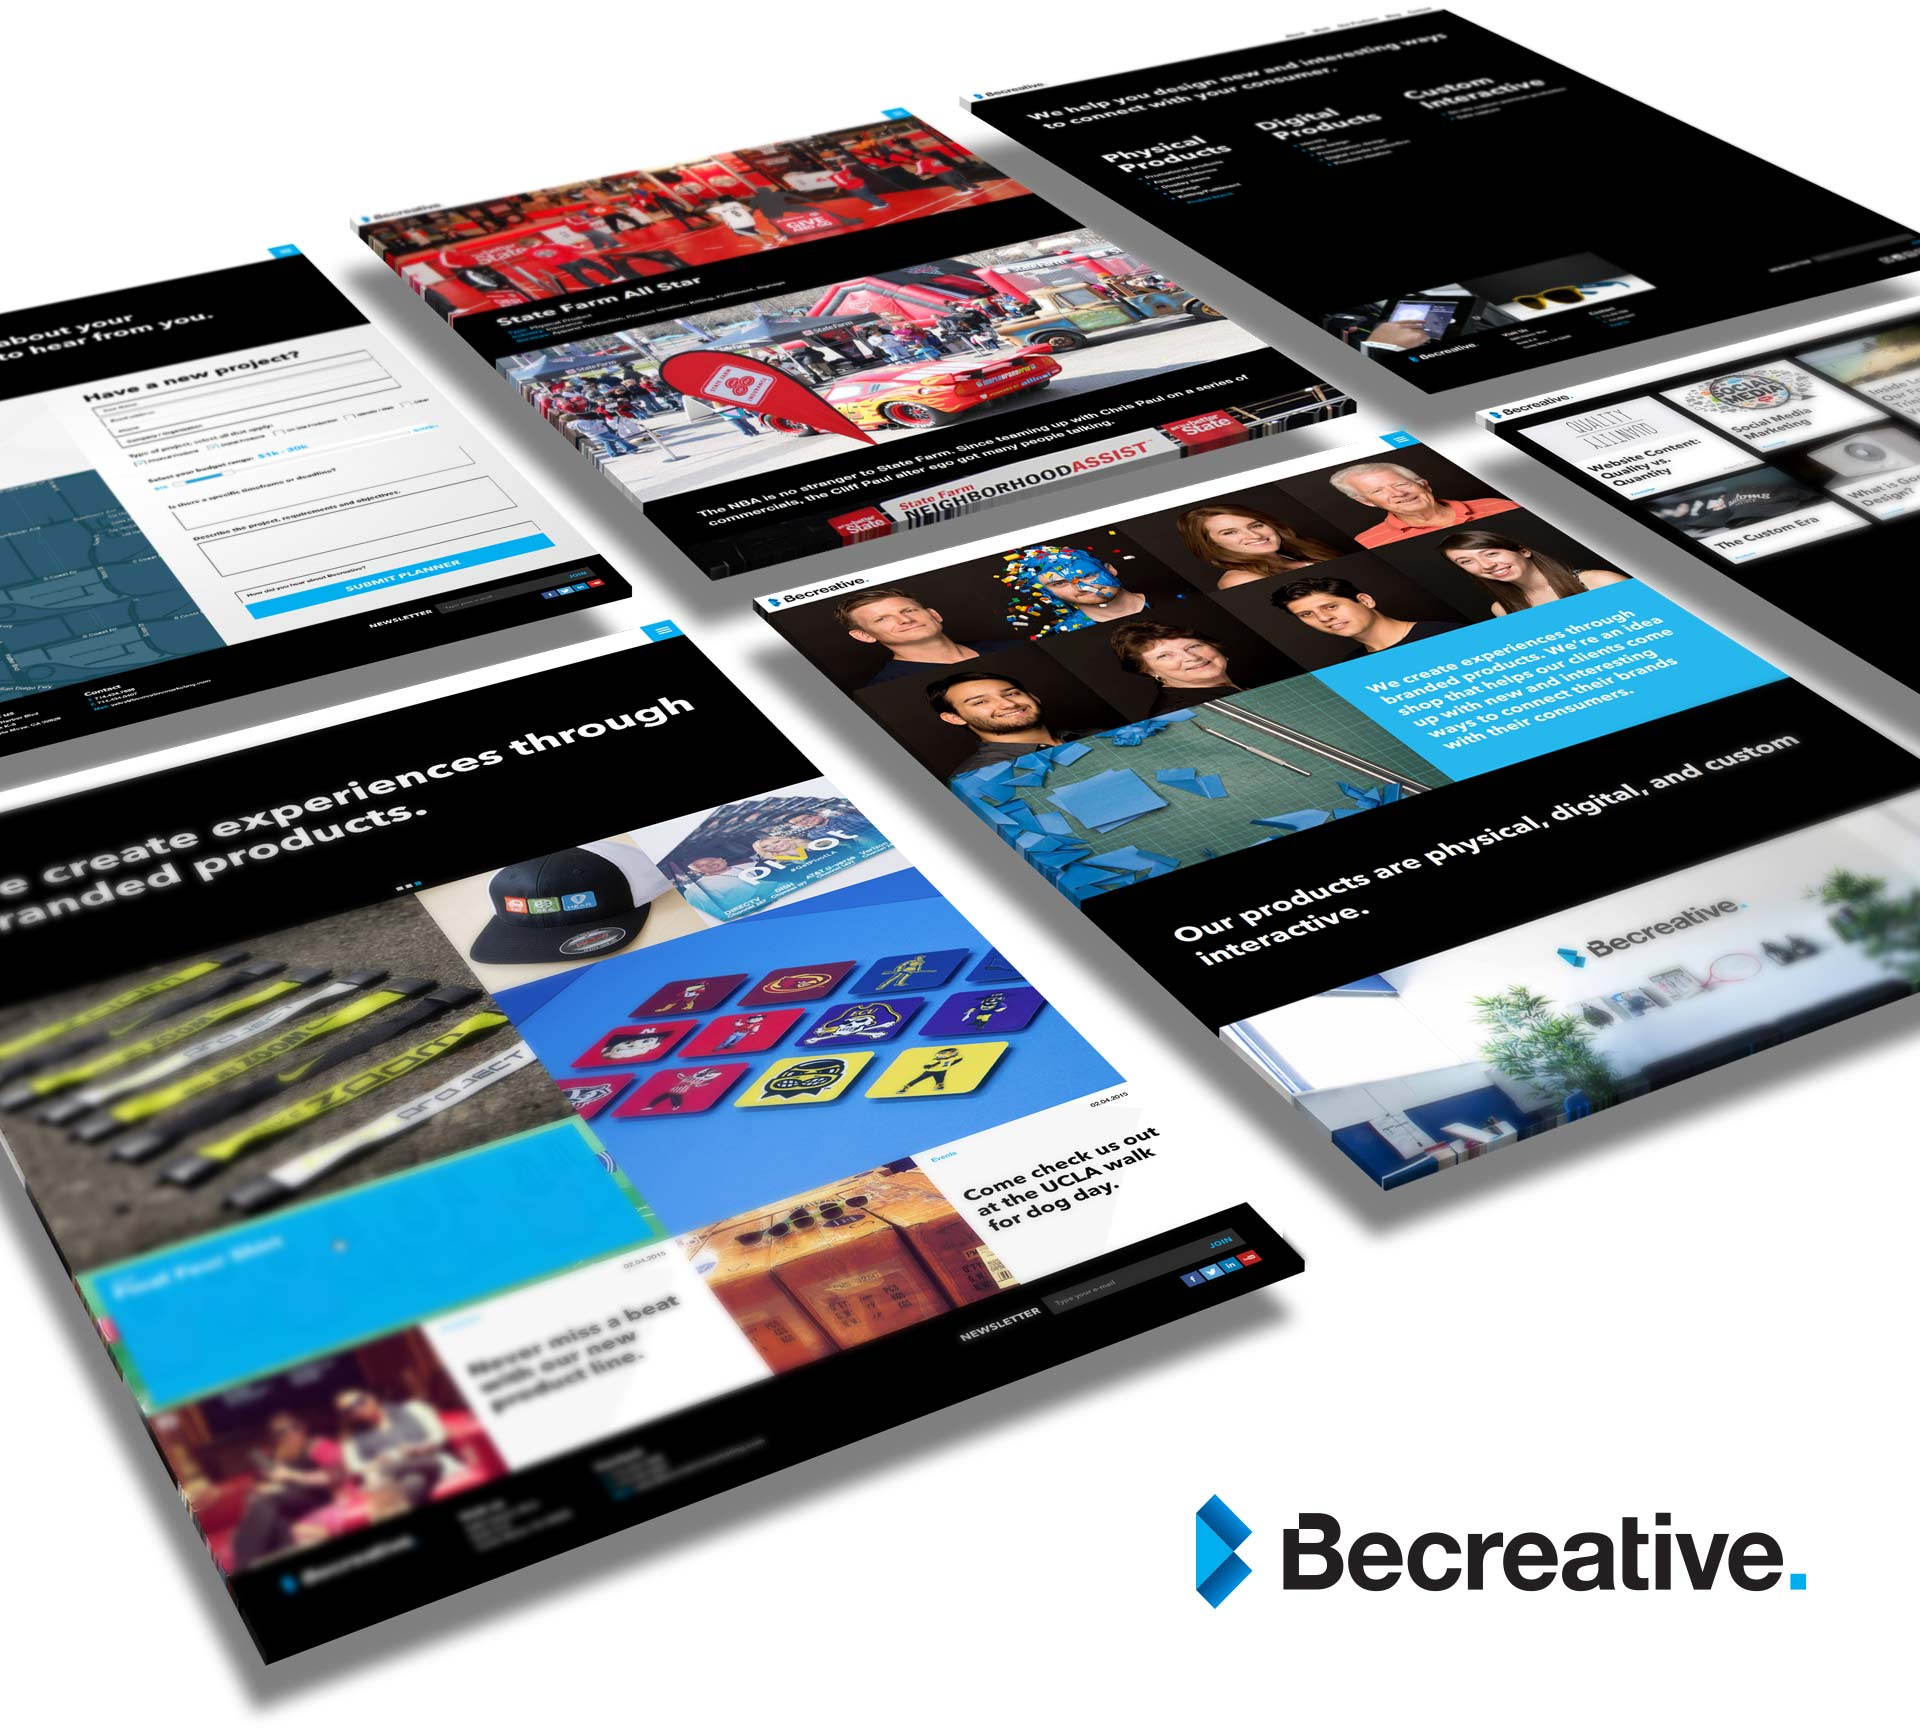 Becreative Marketing Web Pages